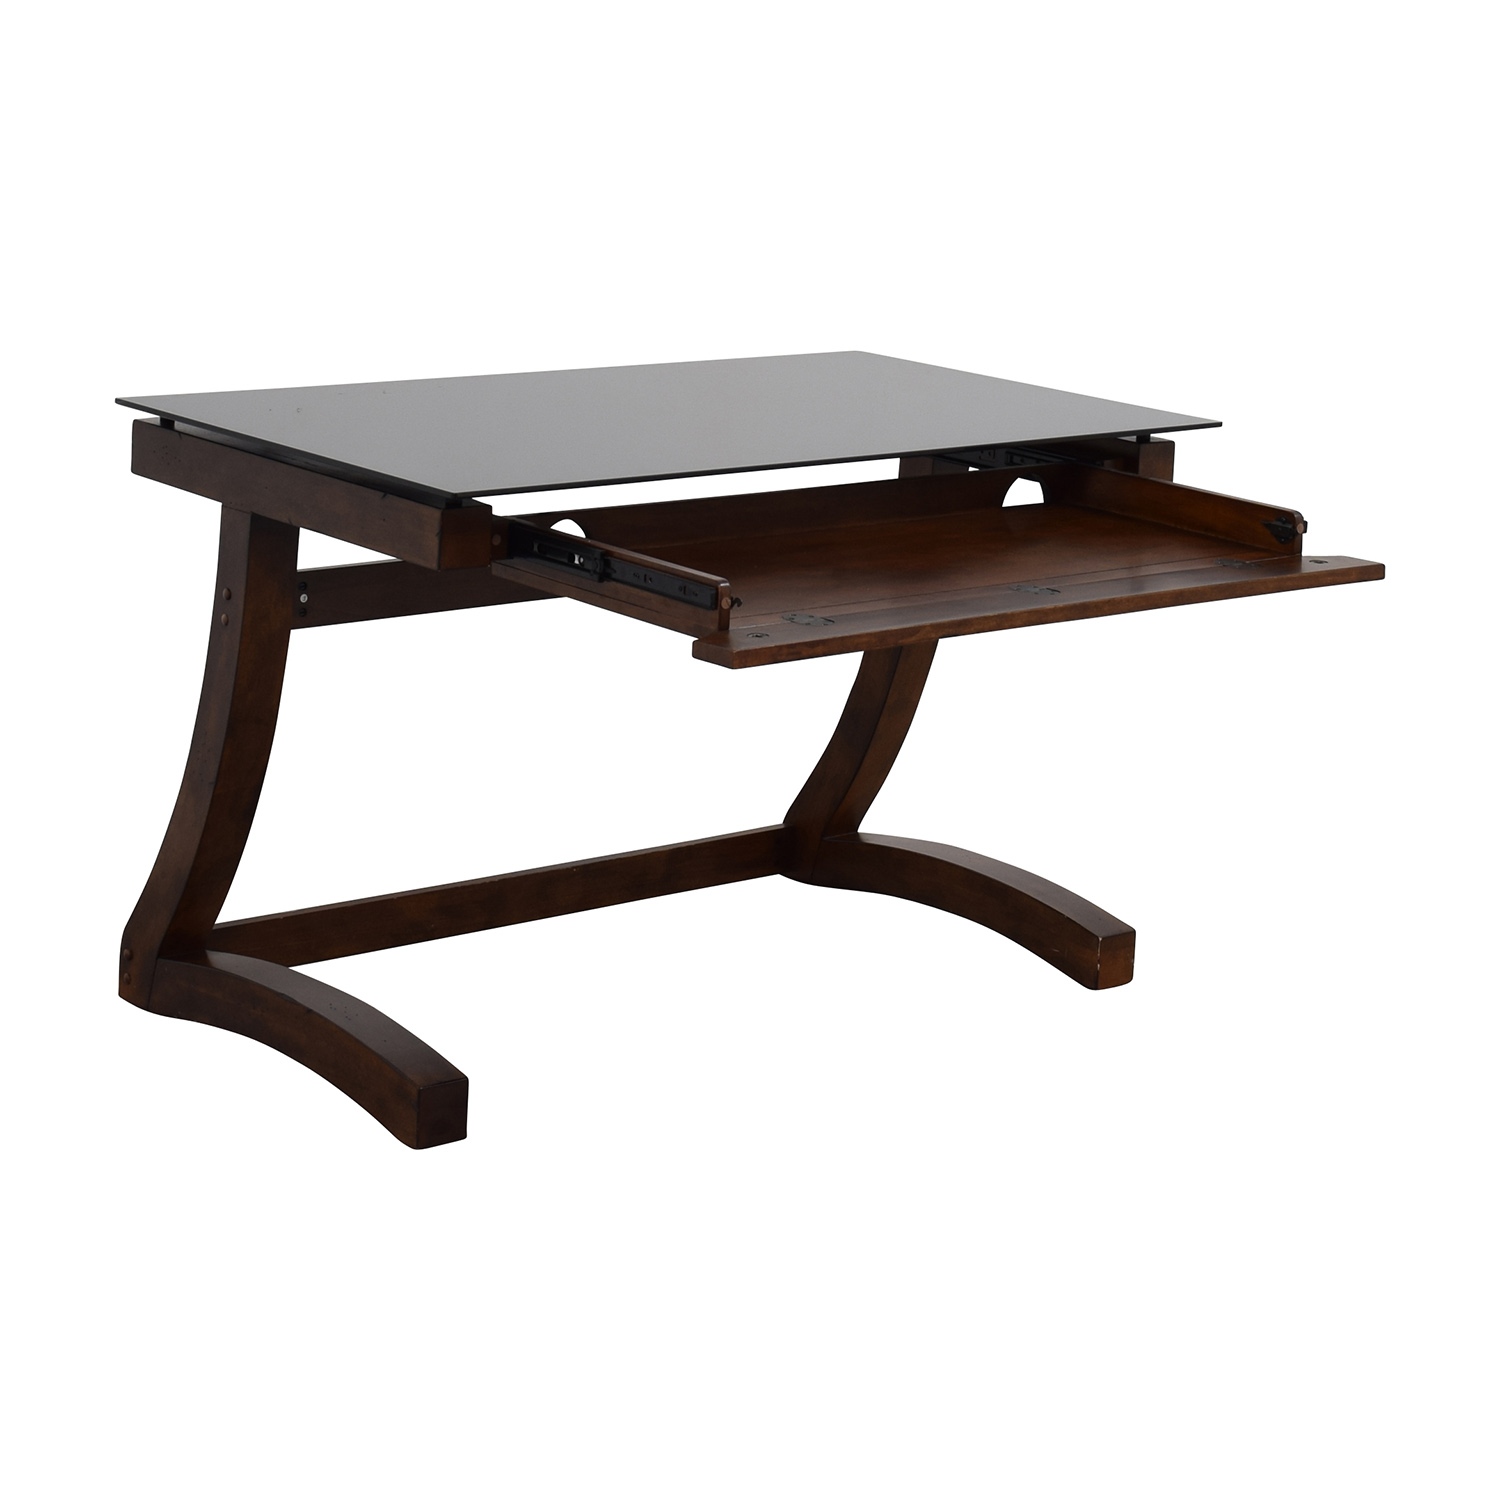 buy Raymour & Flanigan Computer Table and Chair Raymour & Flanigan Home Office Desks